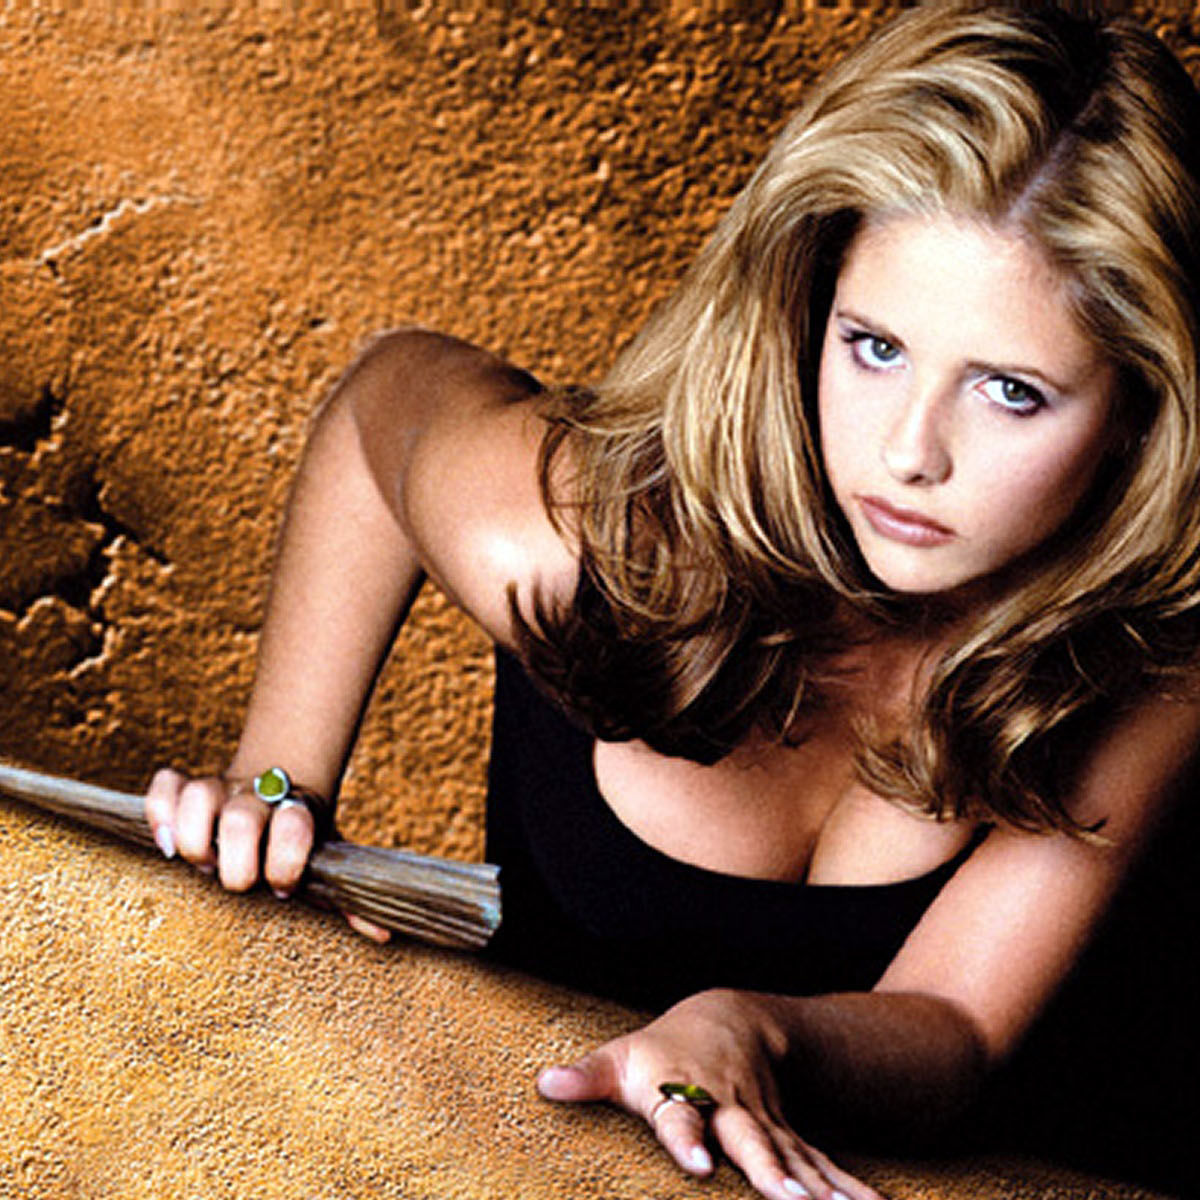 buffy-vampire-slayer-free-images-pictures_407699.jpg